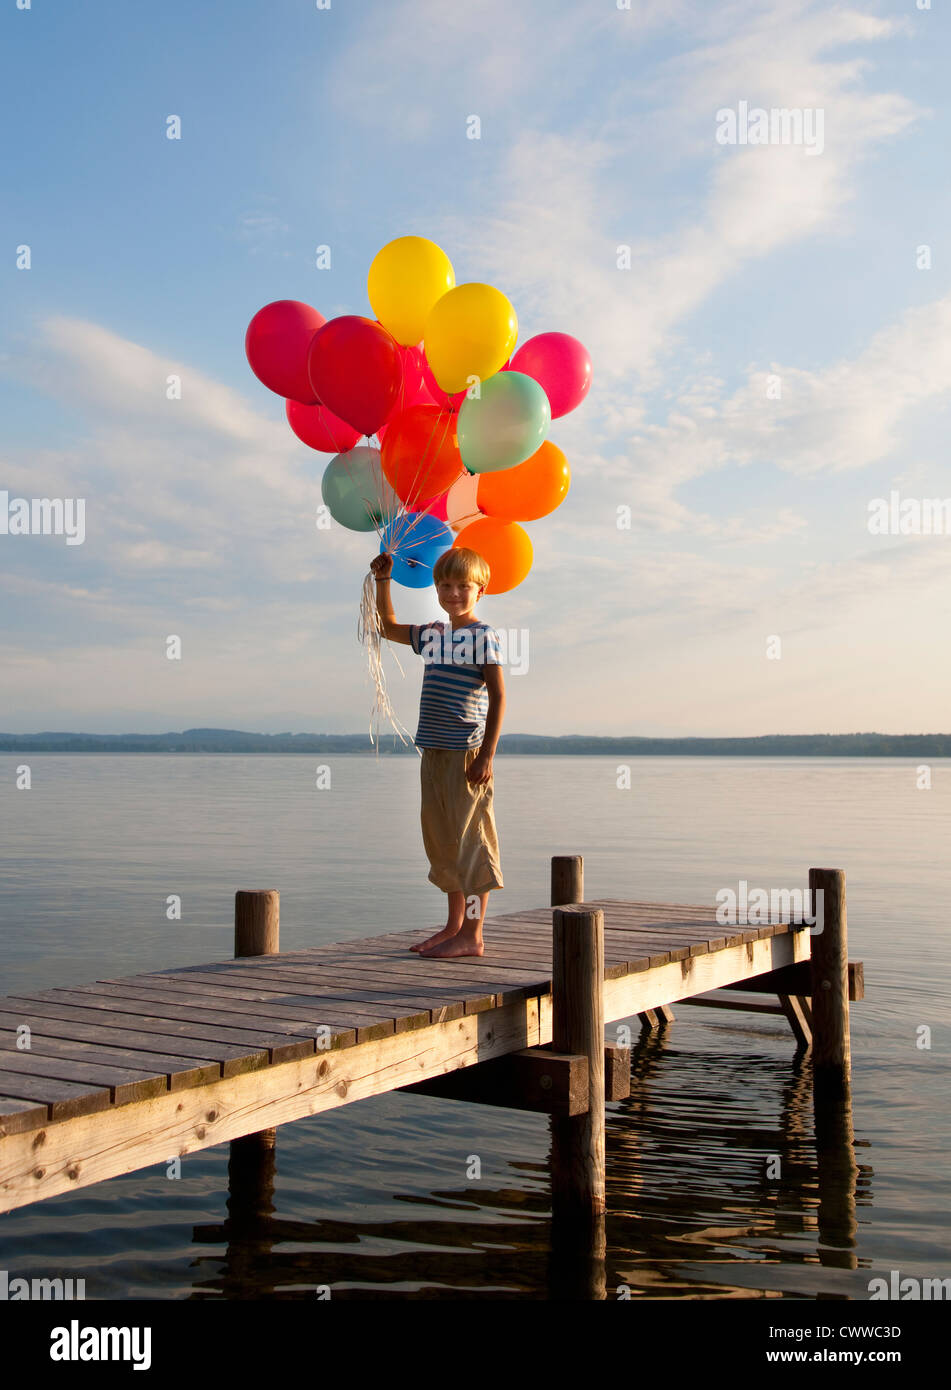 Boy holding balloons on wooden pier - Stock Image